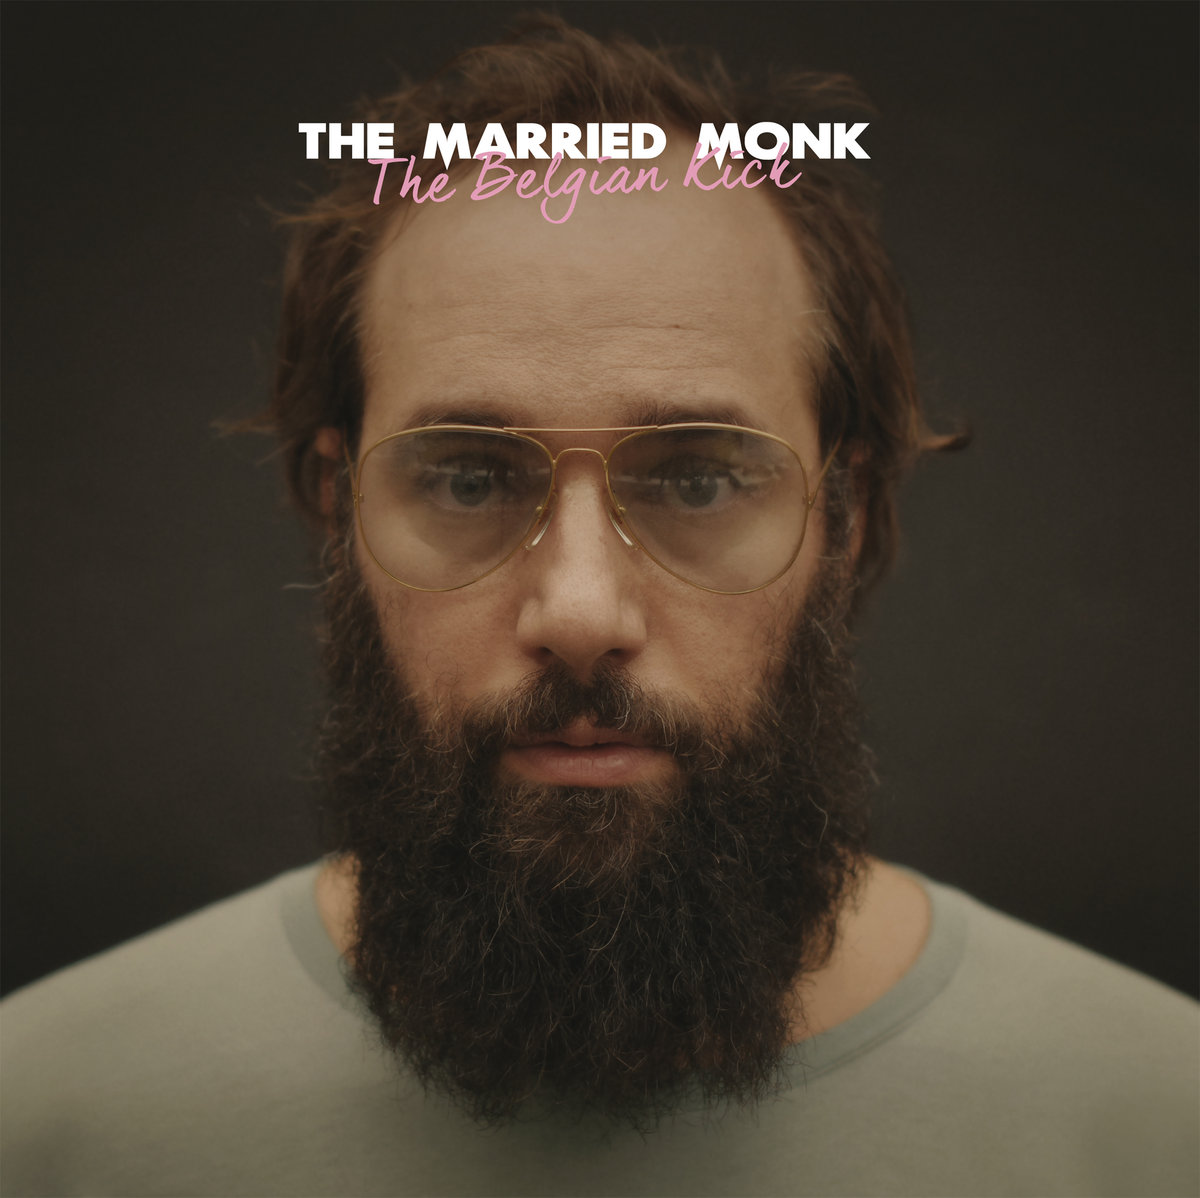 The married monk